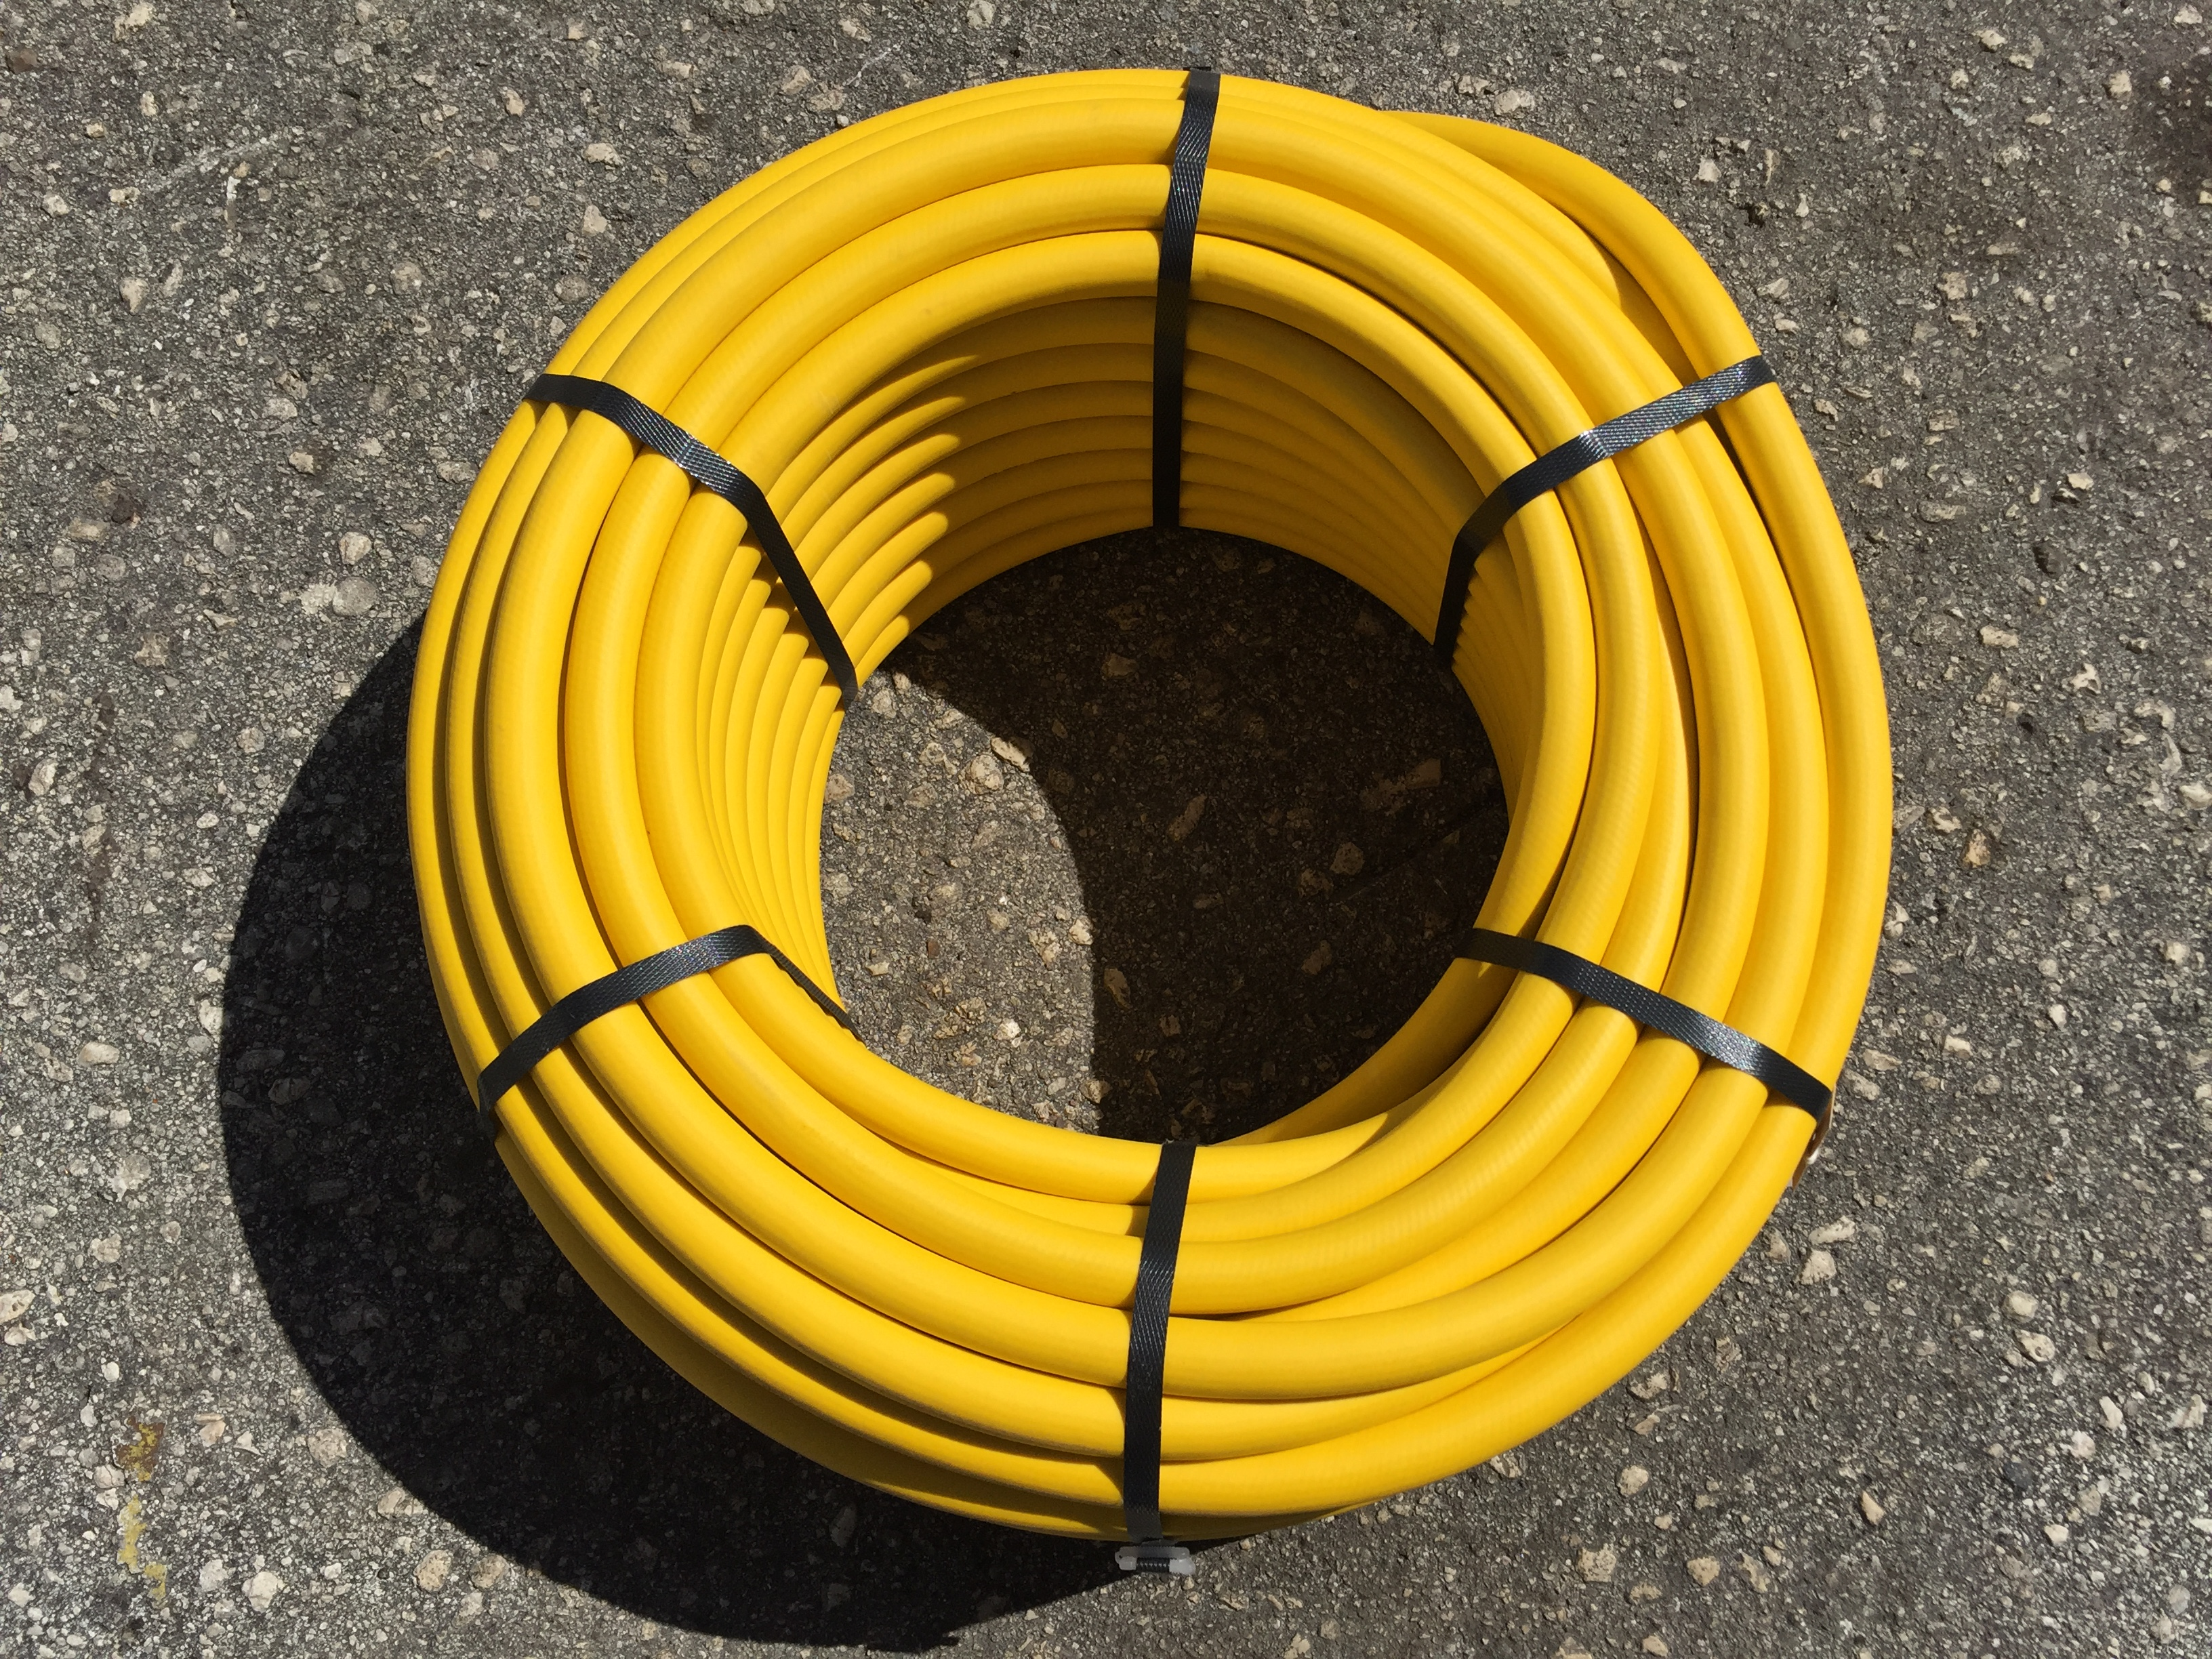 10 All Chemical Application Hose Assemblies Non Pressure Roof Cleaning Products